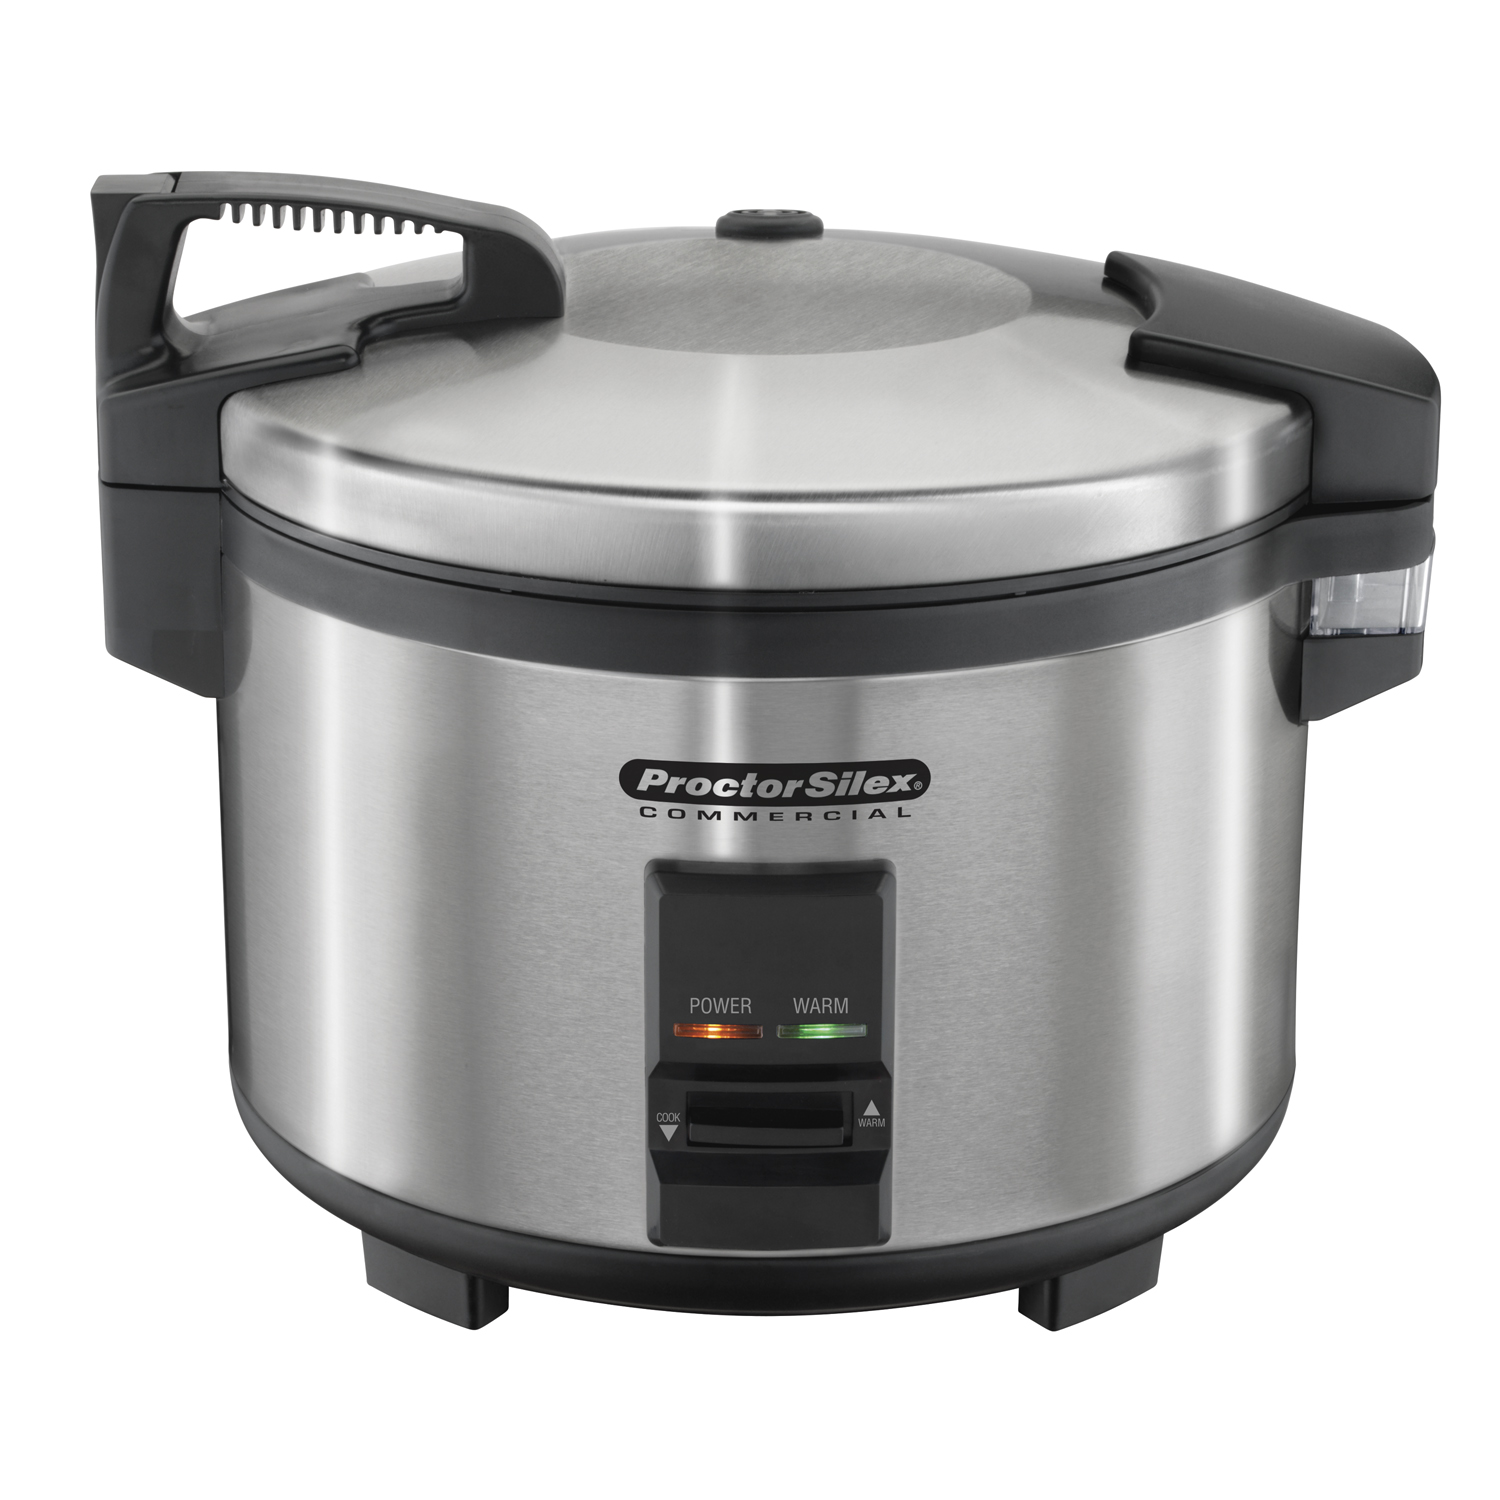 hight resolution of commercial 40 cup 9 l rice cooker warmer 37540 series